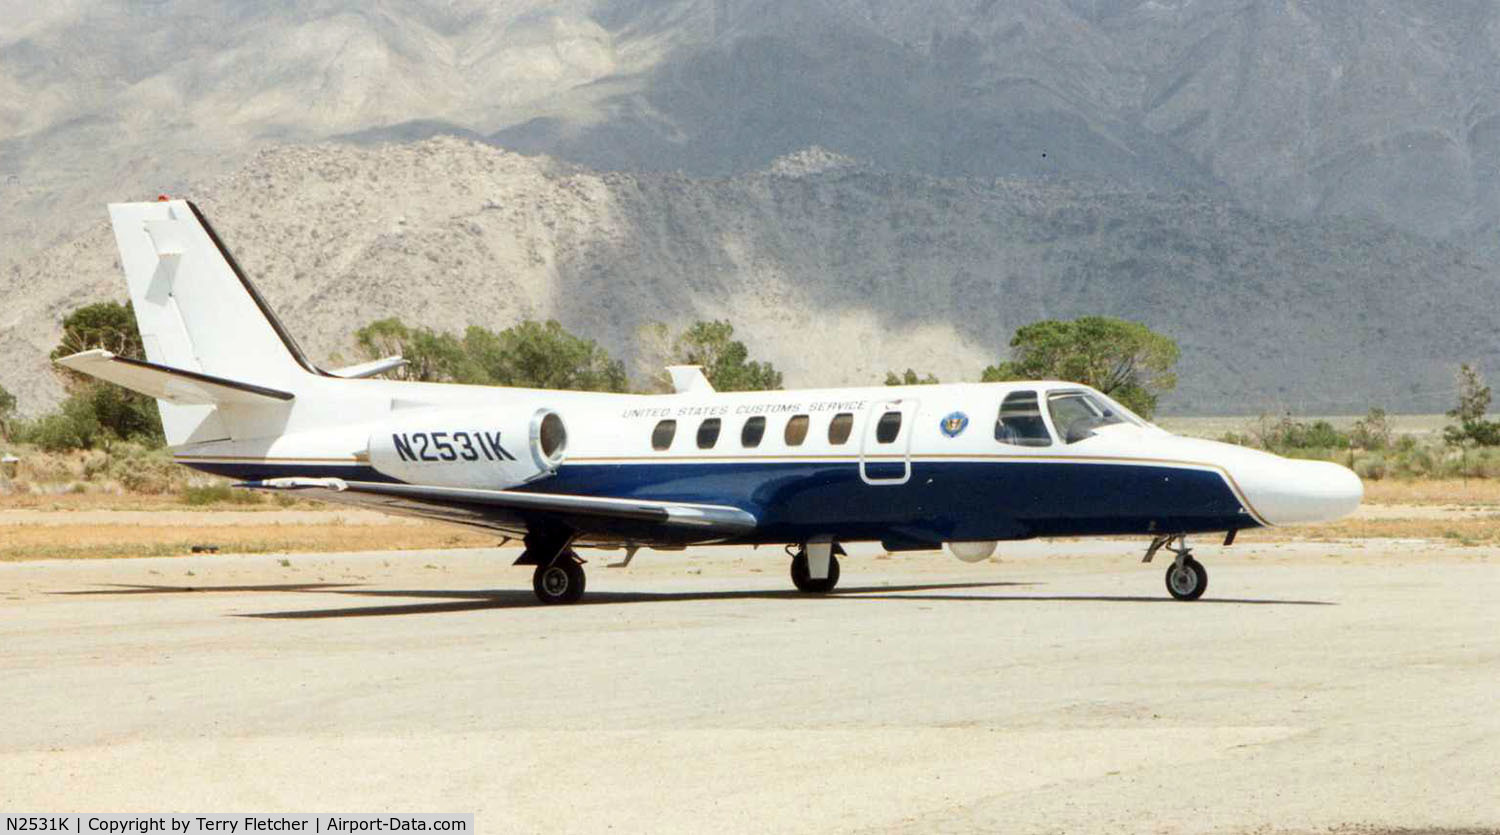 N2531K, 1989 Cessna 550 Citation II C/N 550-0594, US Cutoms Cessna 550 at a small strip in Nevada in 1997